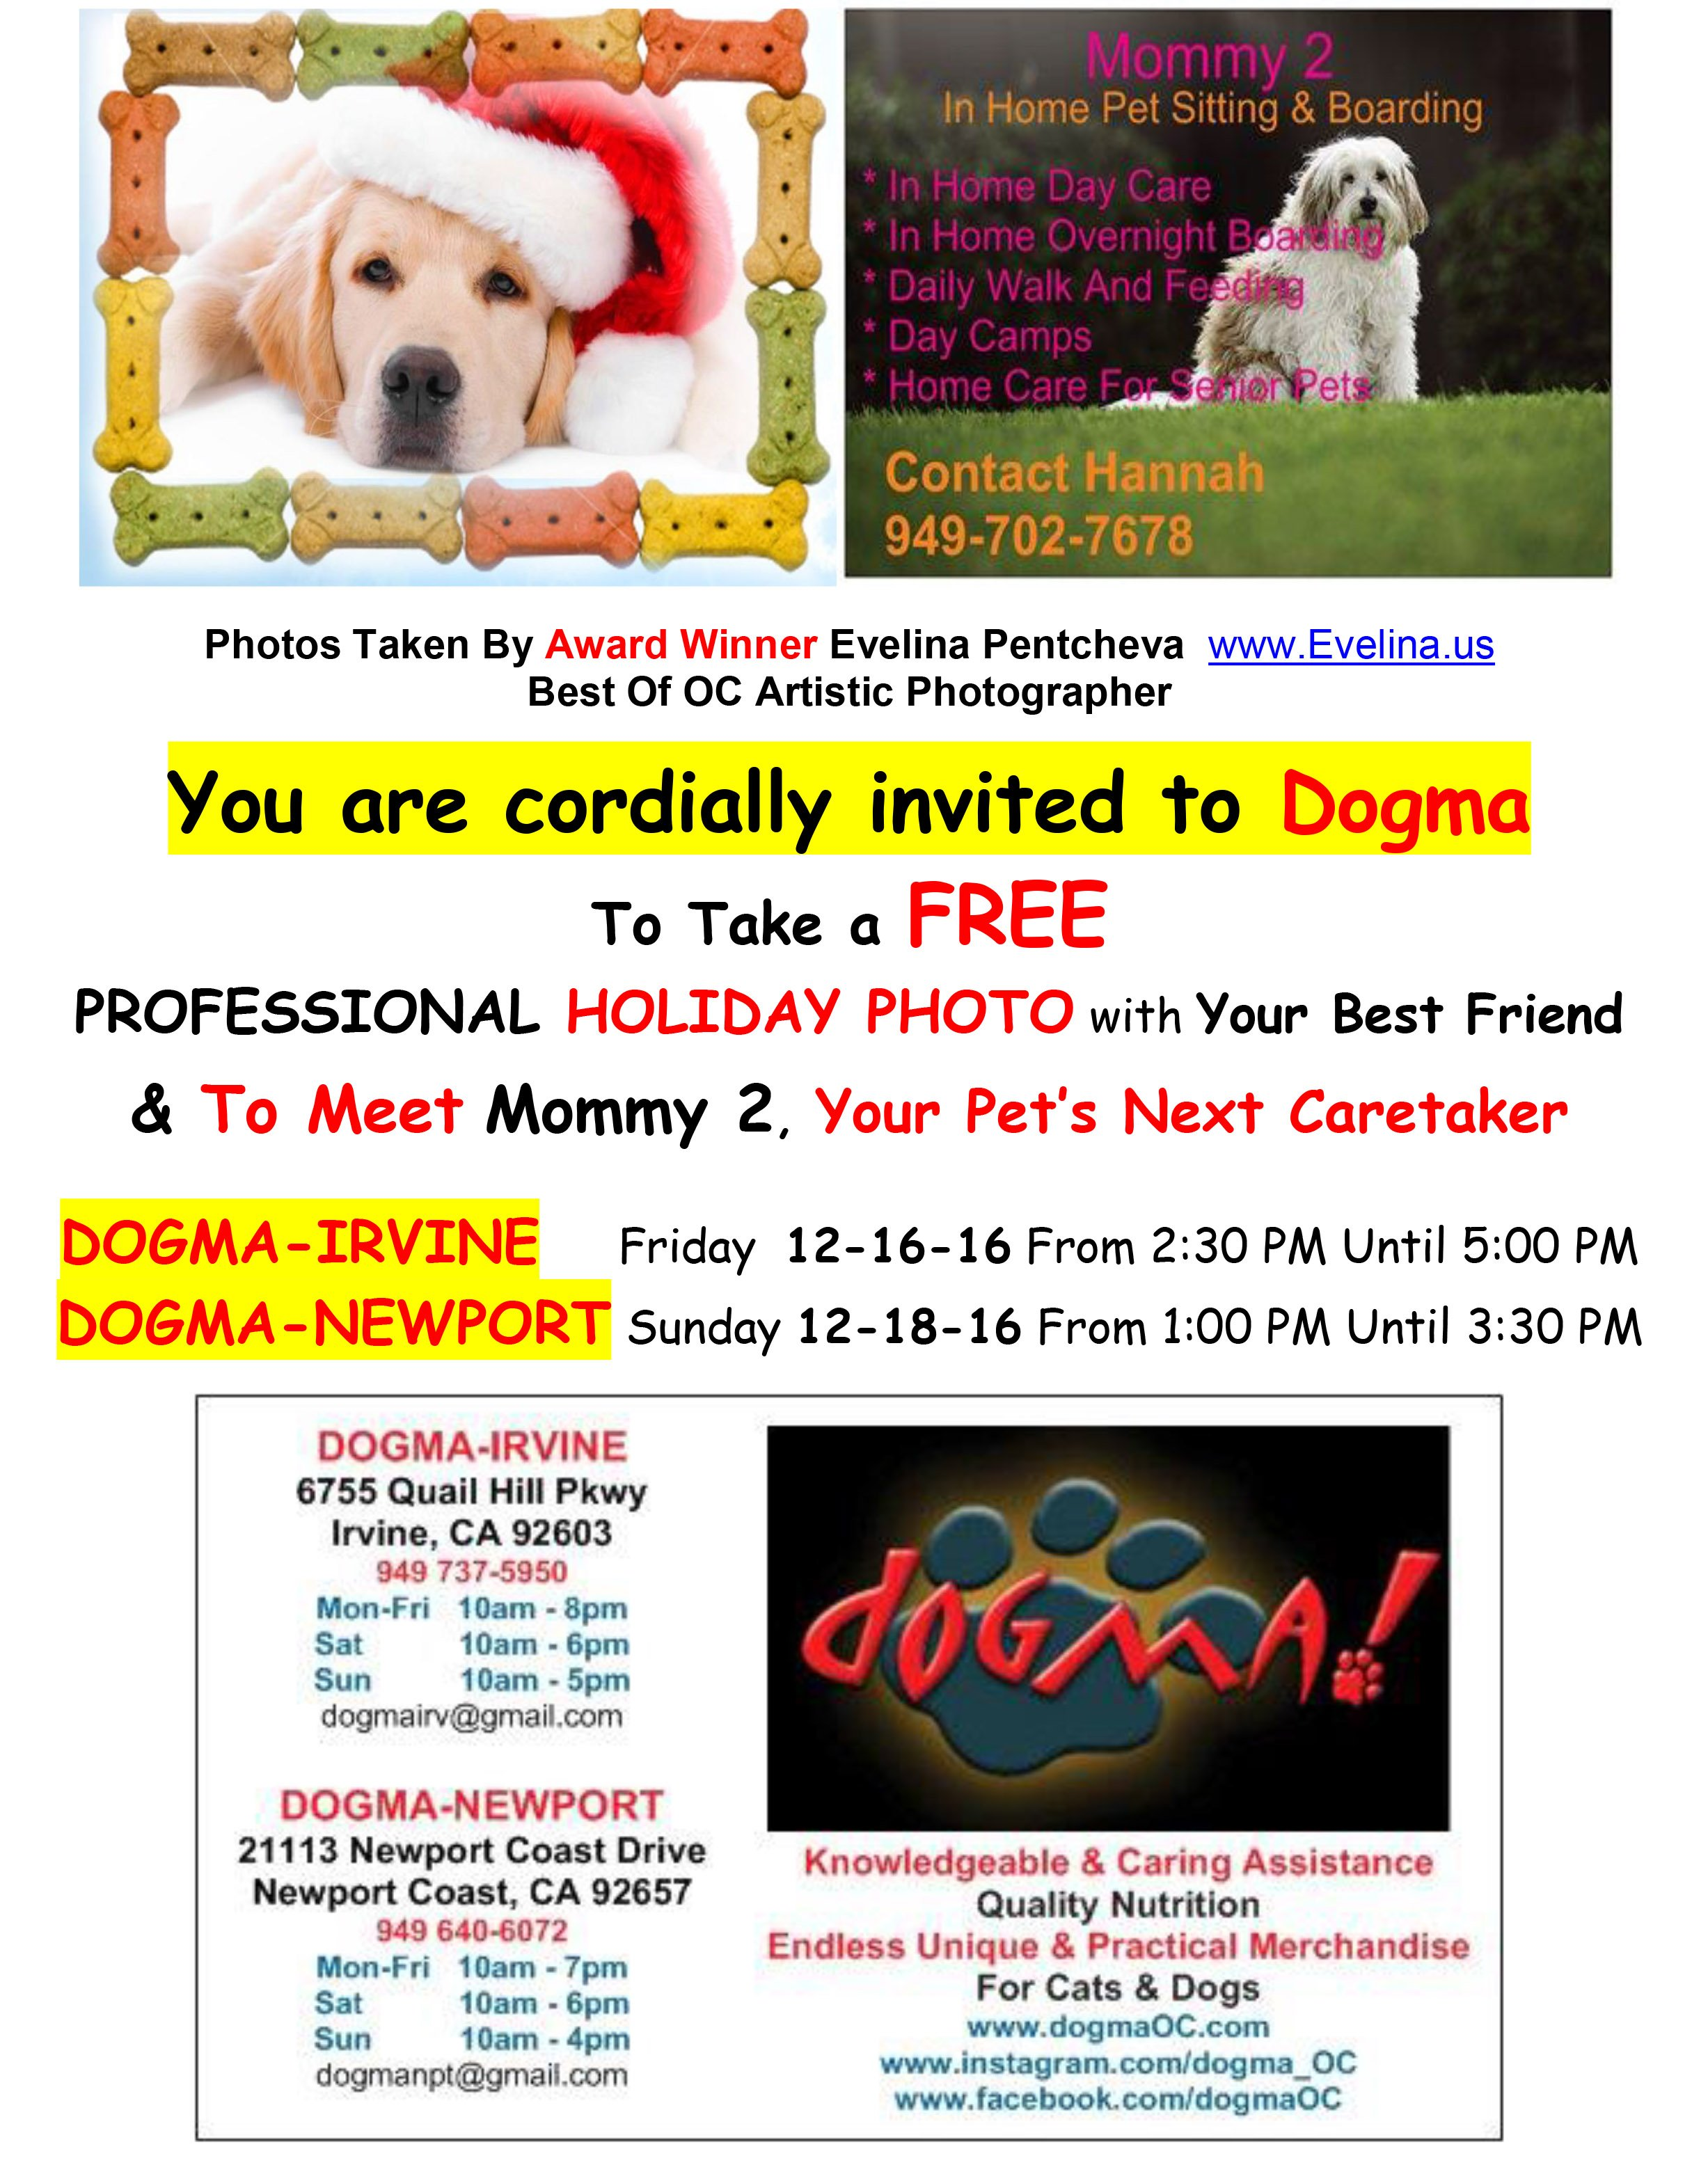 dogma lets our work speak for itself images of our pet dogma lets our work speak for itself images of our pet supplies and events in irvine and newport coast california